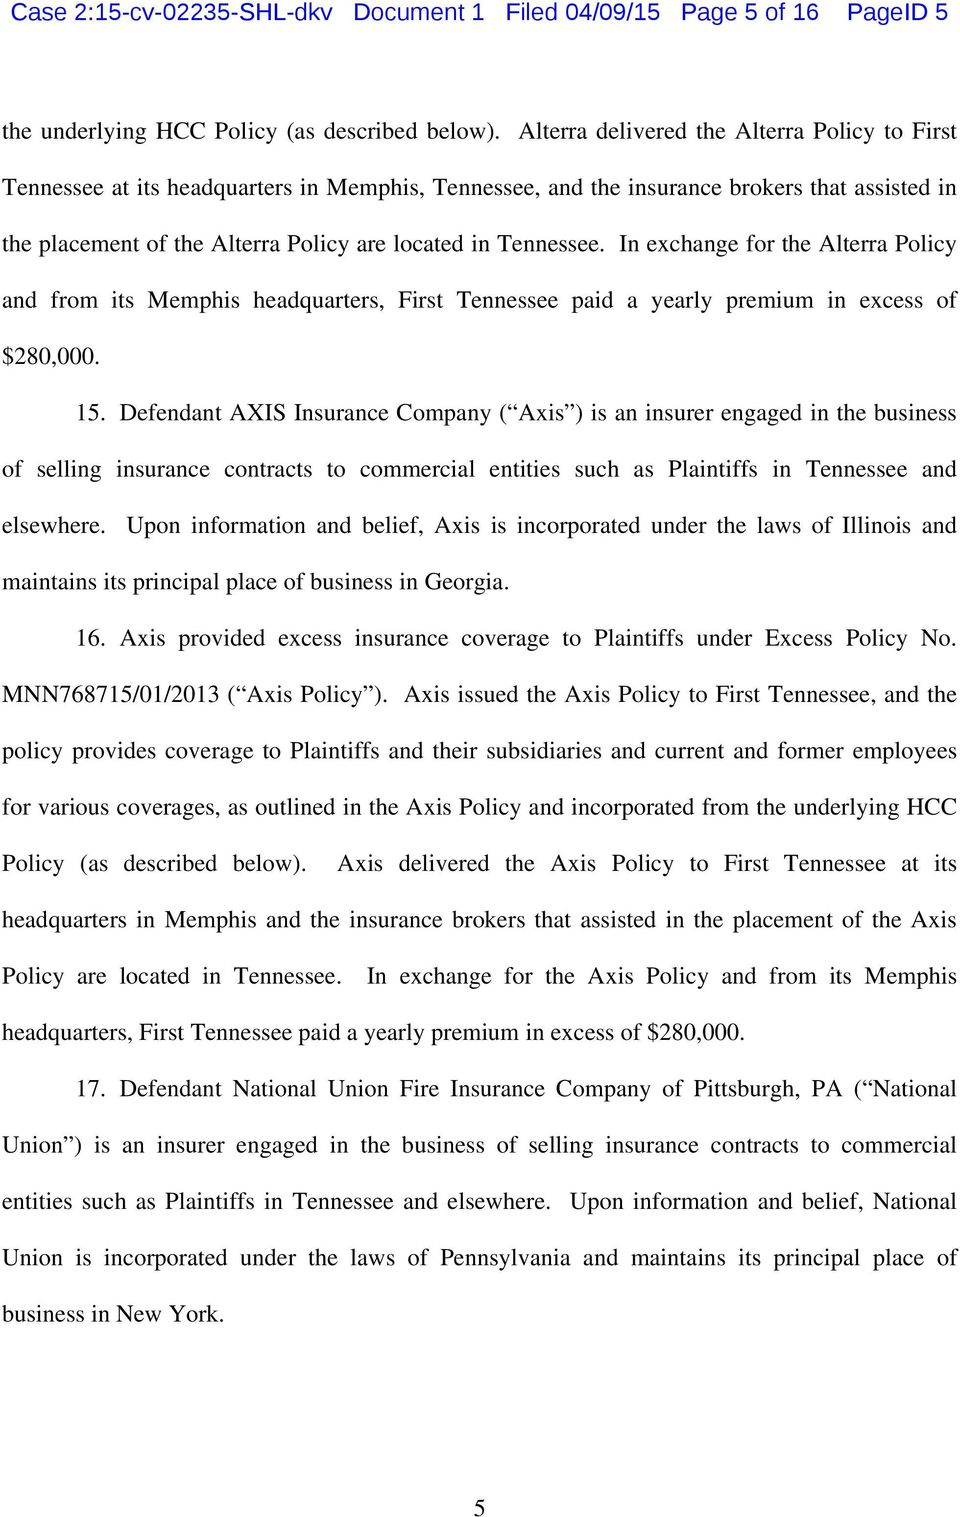 Tennessee. In exchange for the Alterra Policy and from its Memphis headquarters, First Tennessee paid a yearly premium in excess of $280,000. 15.